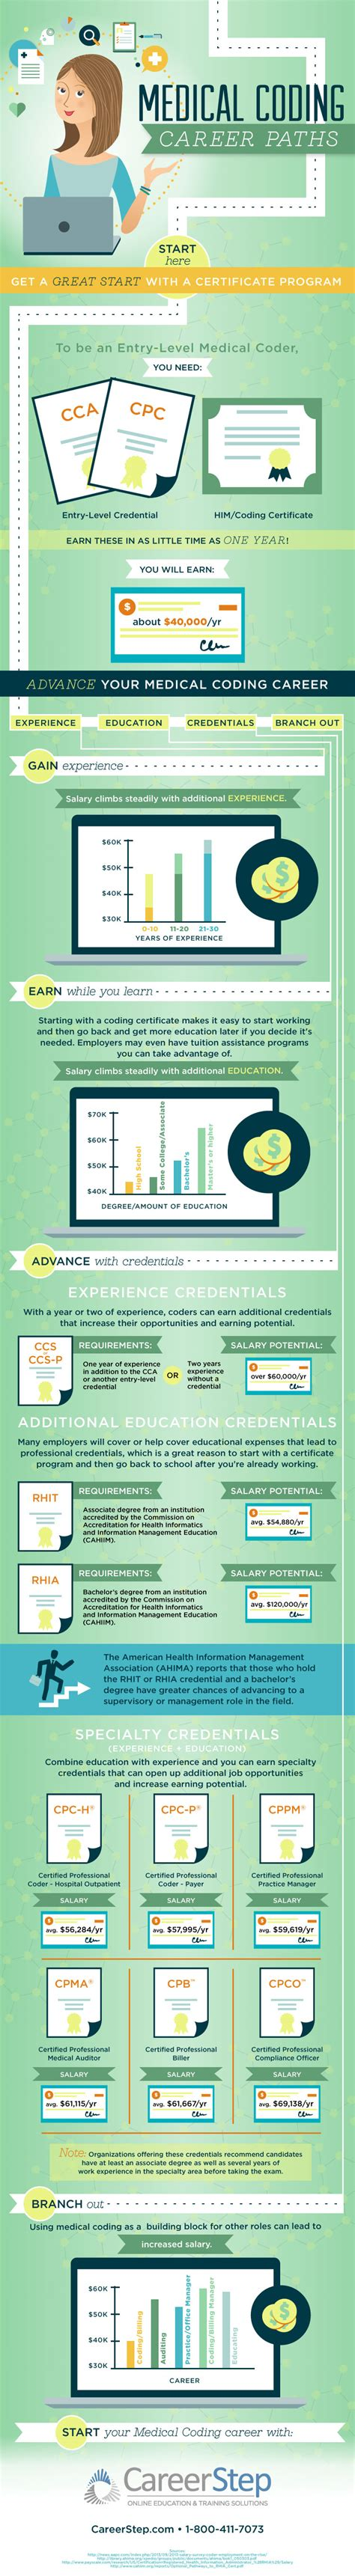 Career Step Publishes New Infographic On Medical Coding. Tuscaloosa Water Company Ach Electronic Check. Workers Comp Insurance For Small Business. Hampstead Family Dental Online Secure Payment. Att Uverse Self Installation. Greensboro Pest Control Moving Companies Costs. Hipaa Whistleblower Reward Managed It Service. Credit Card 0 Purchases Email Delivery Report. Upholstery Cleaning Fort Worth